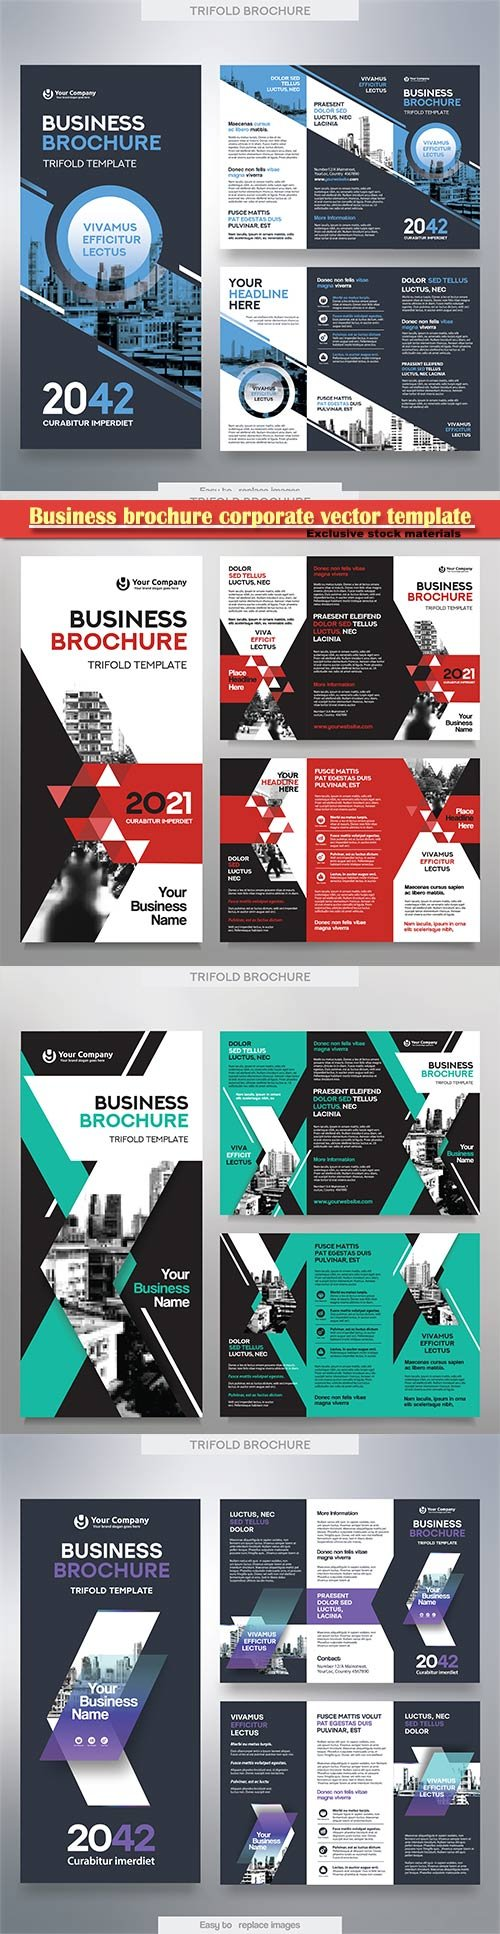 Business brochure corporate vector template, magazine flyer mockup # 49